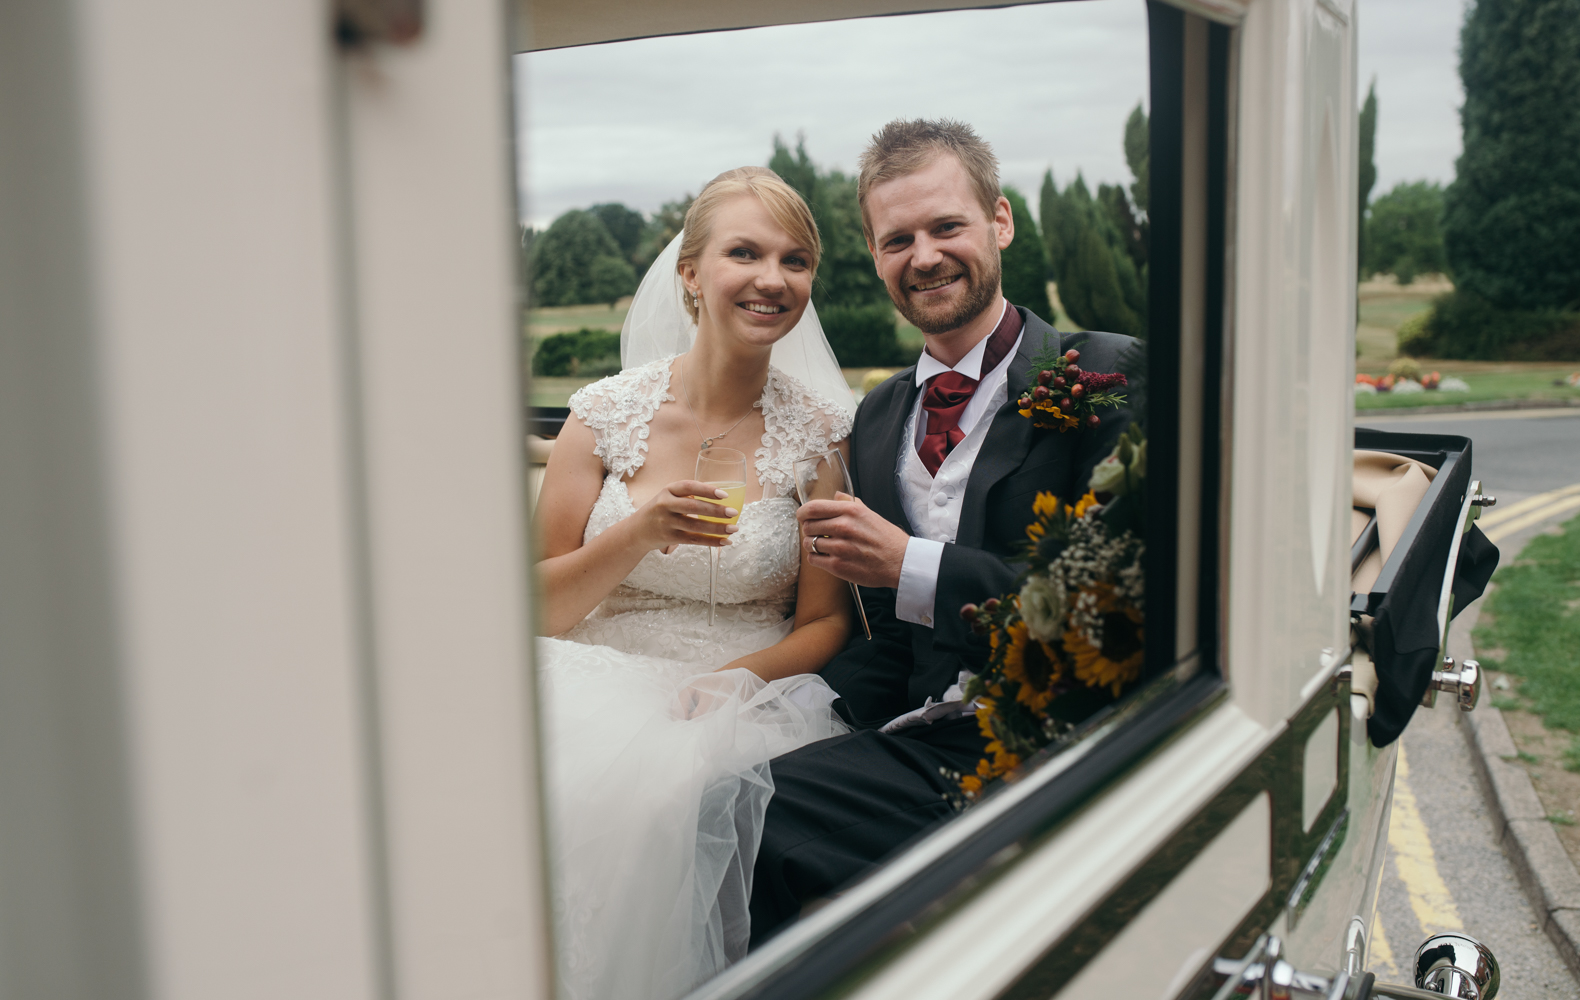 The bride and groom sitting in the back of the car having a cheeky glass of champers